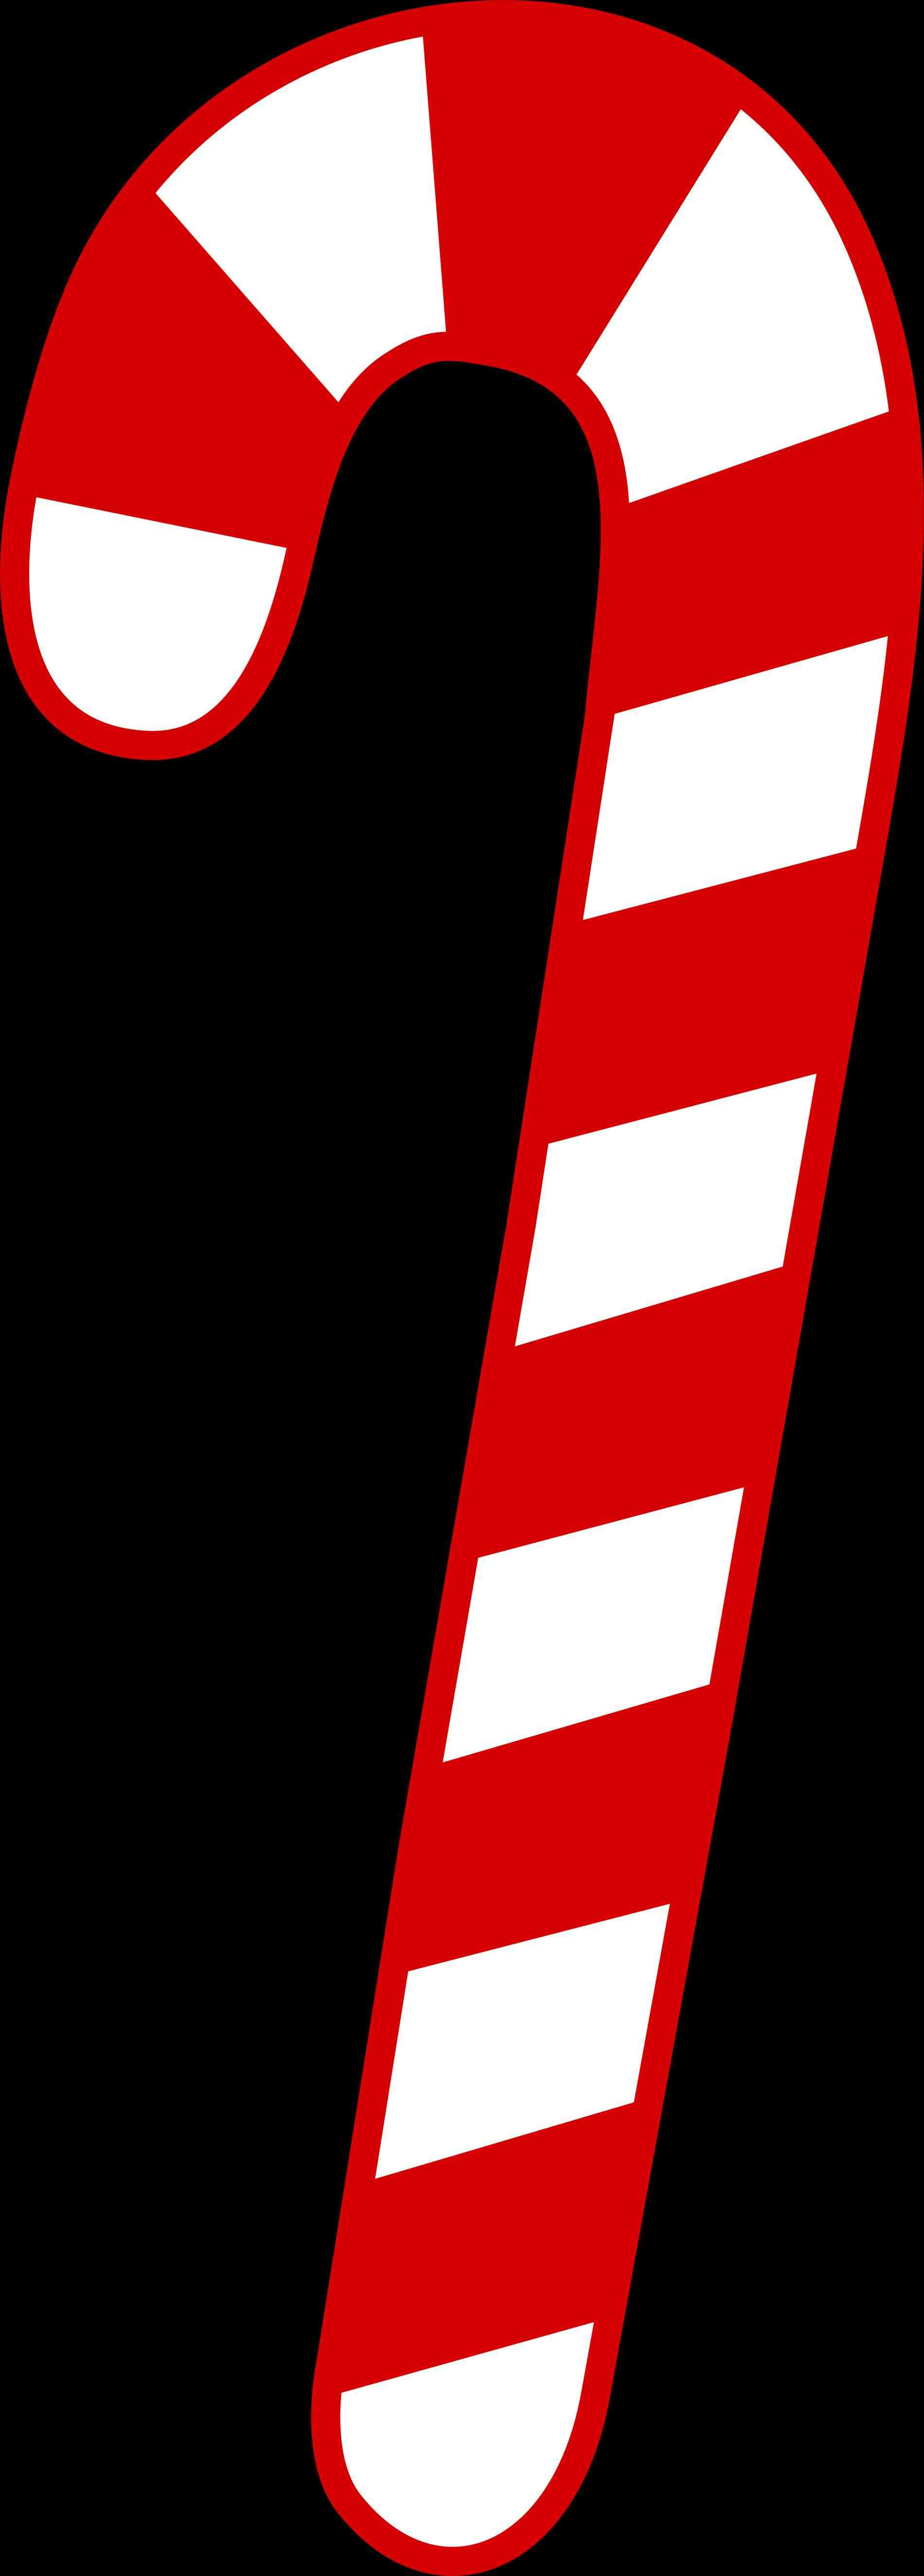 1900x5298 Candy Cane Clip Art Stocking Pencil And In Color Stocking